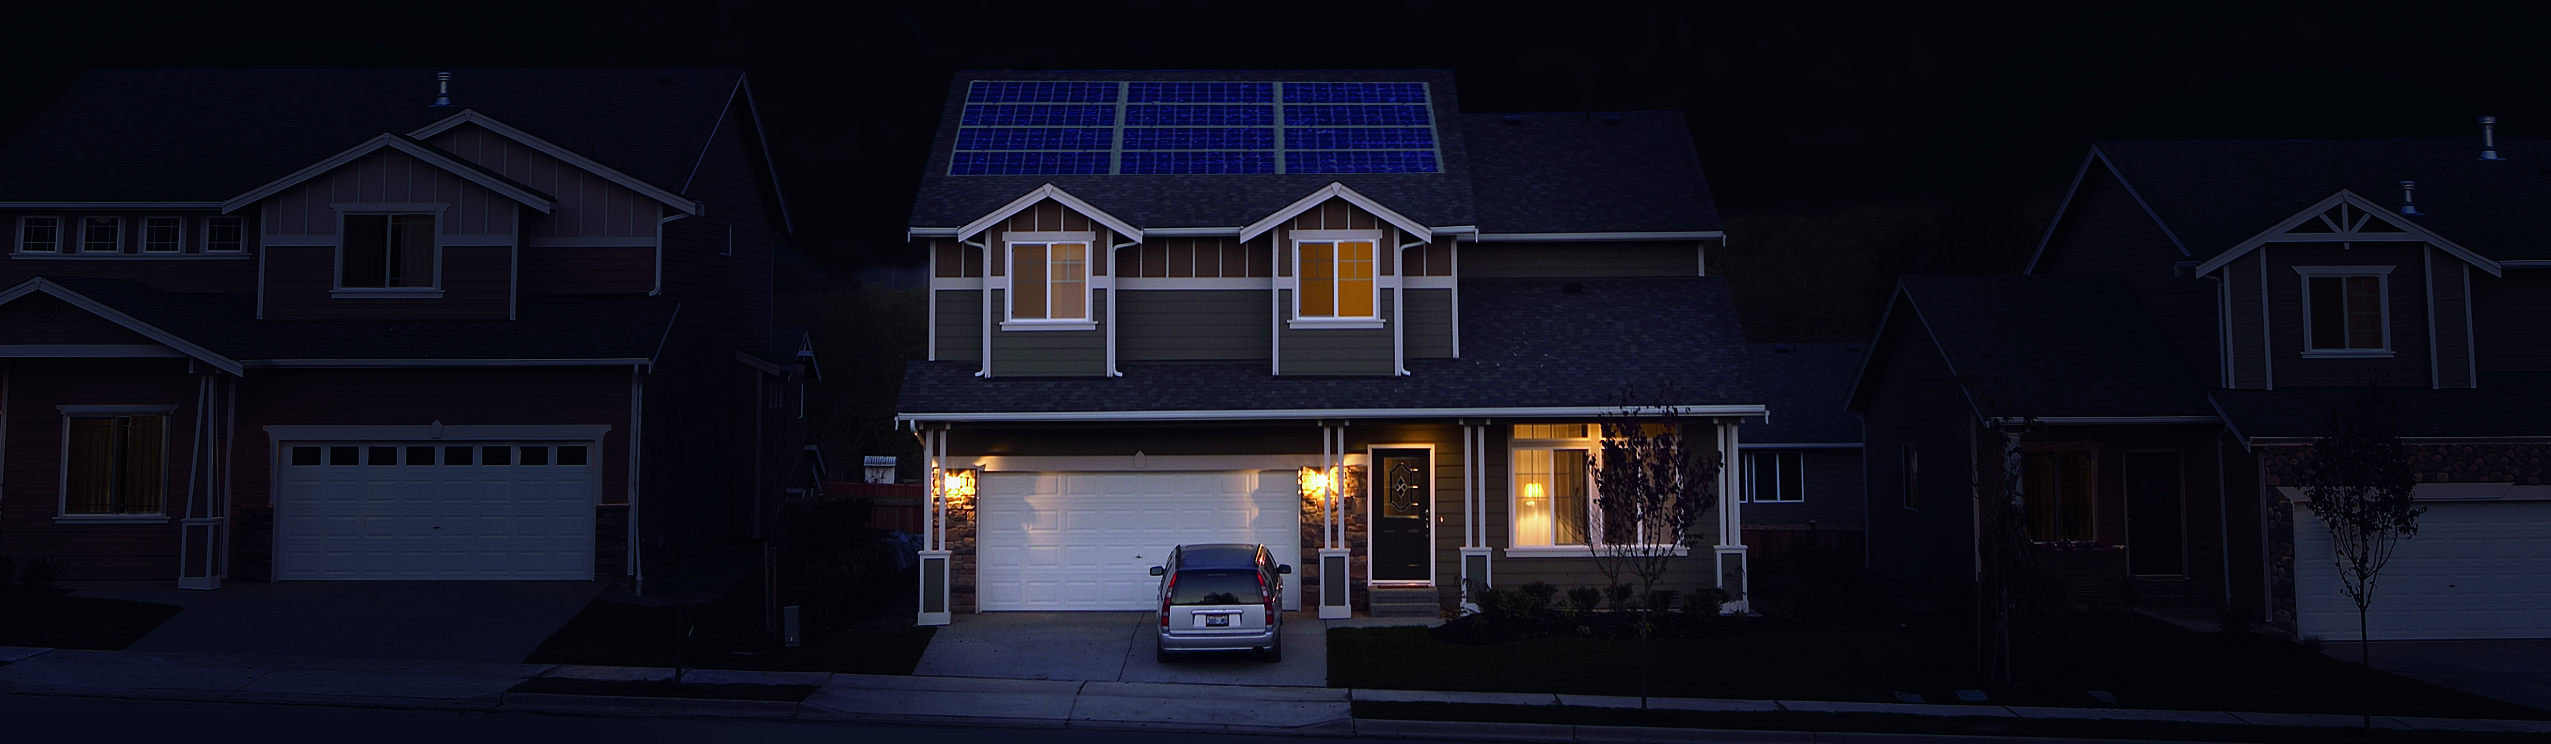 SMA Residential Solar and Storage